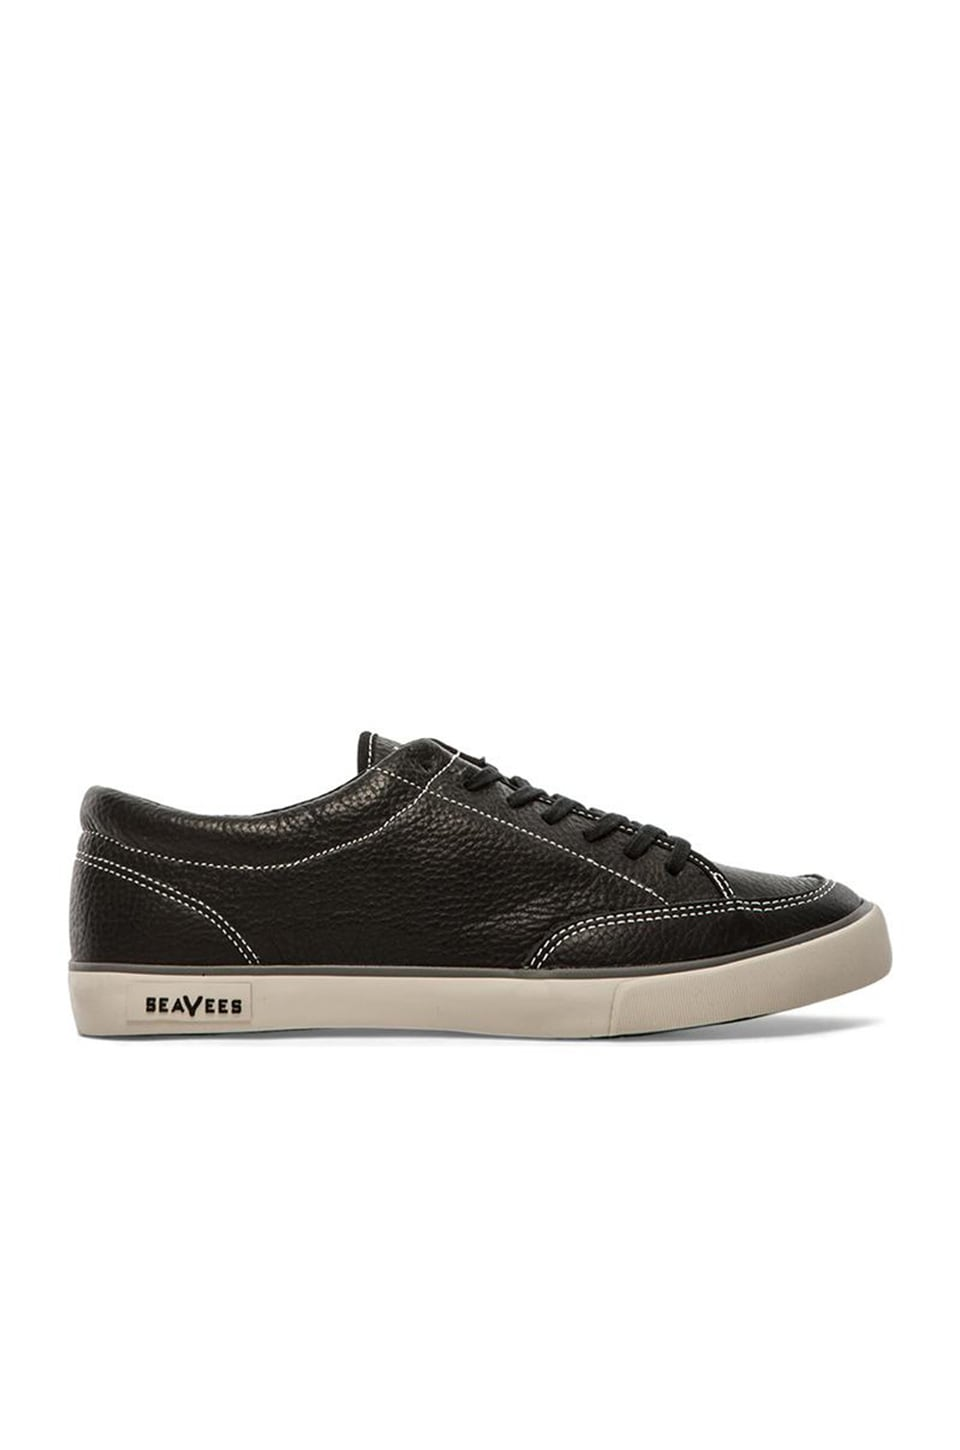 SeaVees 05/65 Westwood Tennis Shoe in Noir Vintage Leather